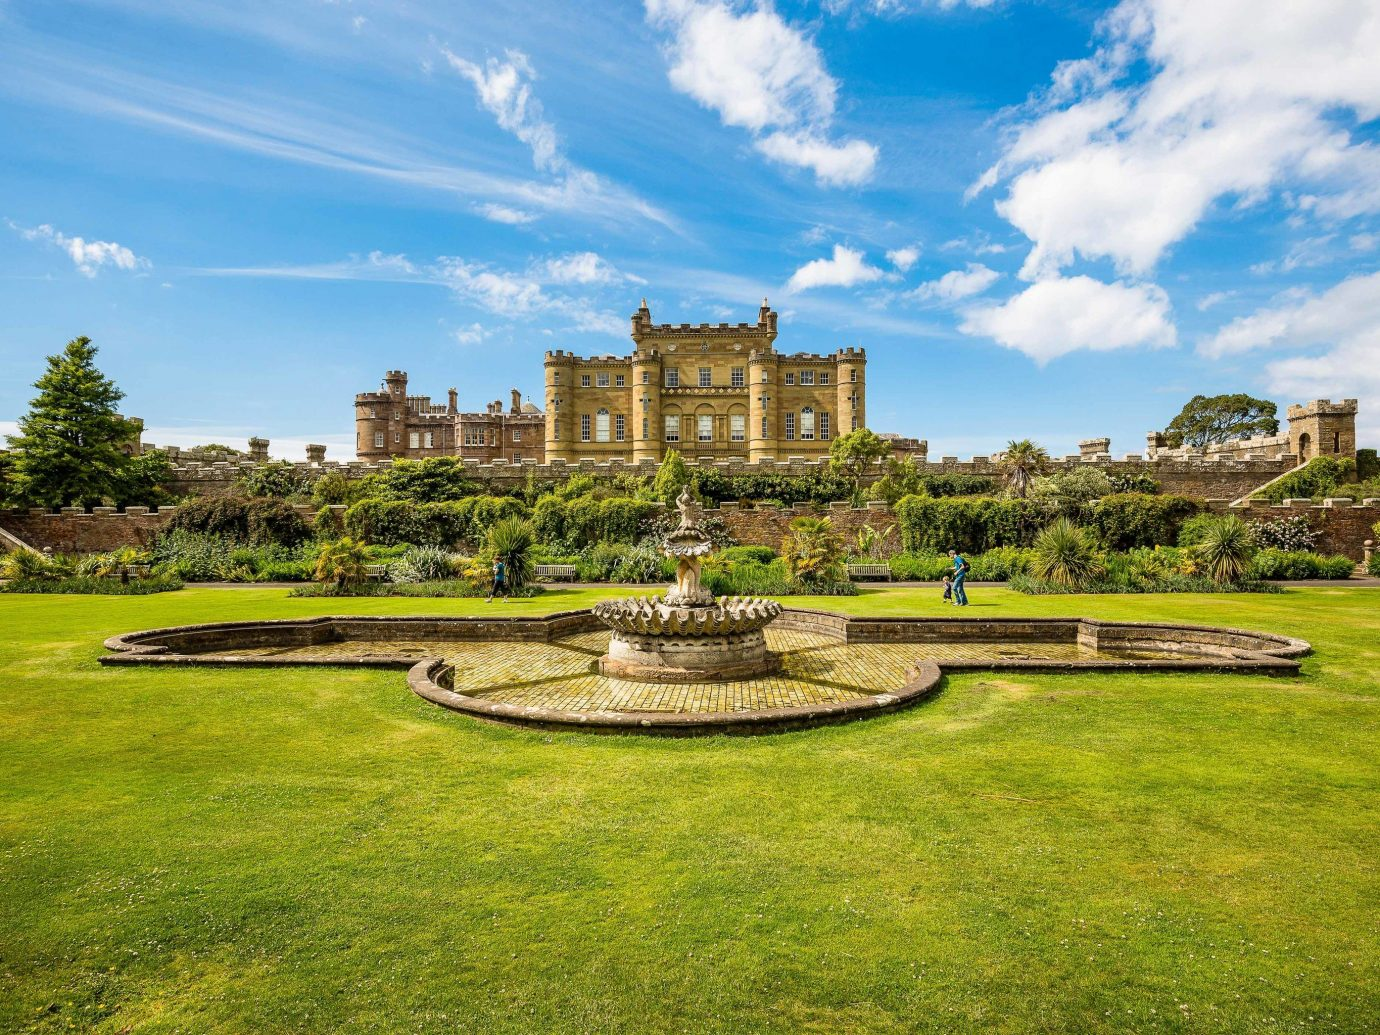 Trip Ideas grass sky outdoor Nature estate stately home cloud lawn national trust for places of historic interest or natural beauty daytime Garden landscape real estate mansion green tree landscaping grassland field land lot meadow grassy water feature lush day